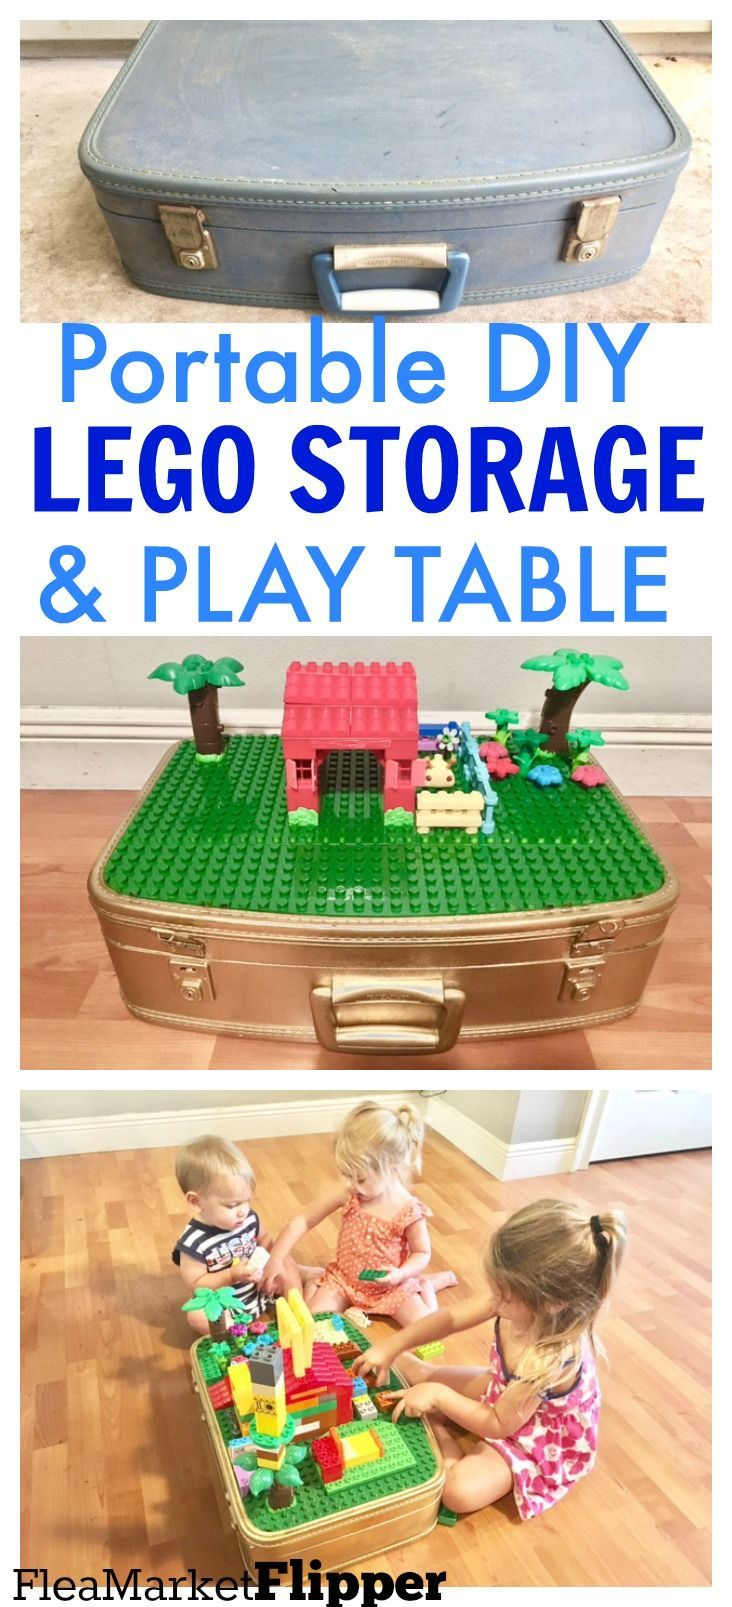 Turn an old suitcase from the FLEA MARKET or THRIFT STORE, into a FUN, CREATIVE play area for kids and their LEGOS!  Taking this with us in our RV!